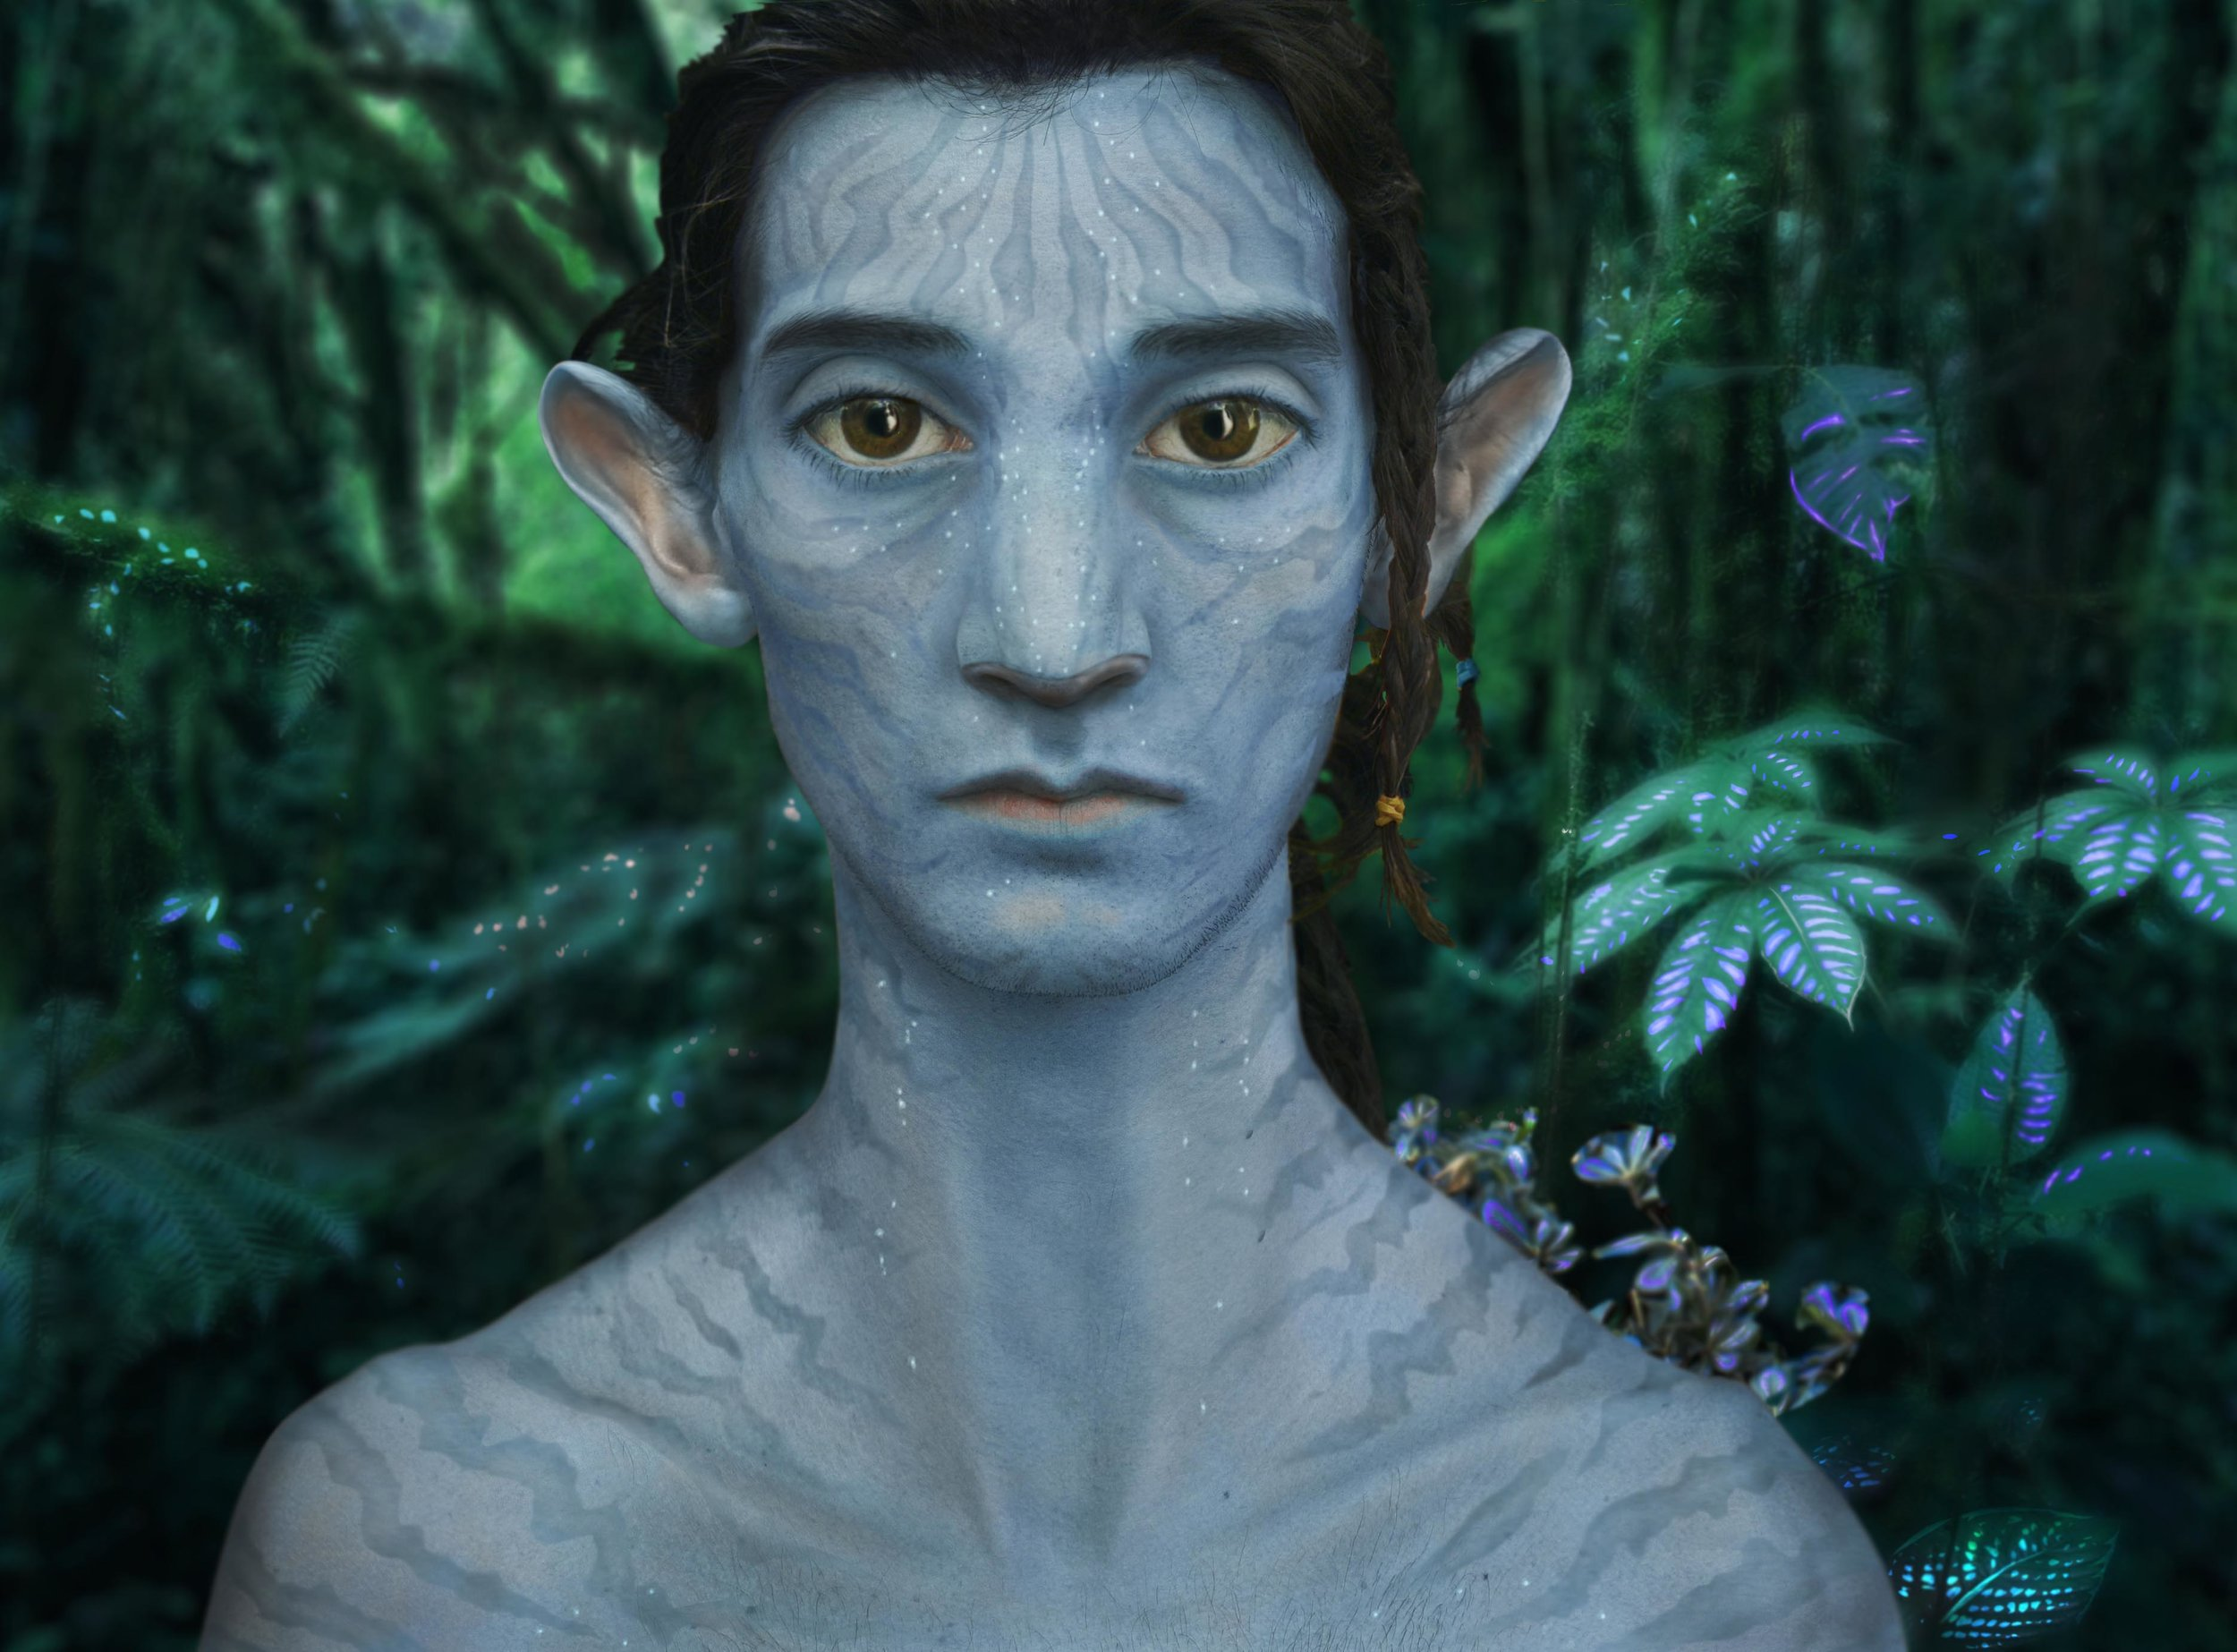 Avatar    Digital Photography    2010